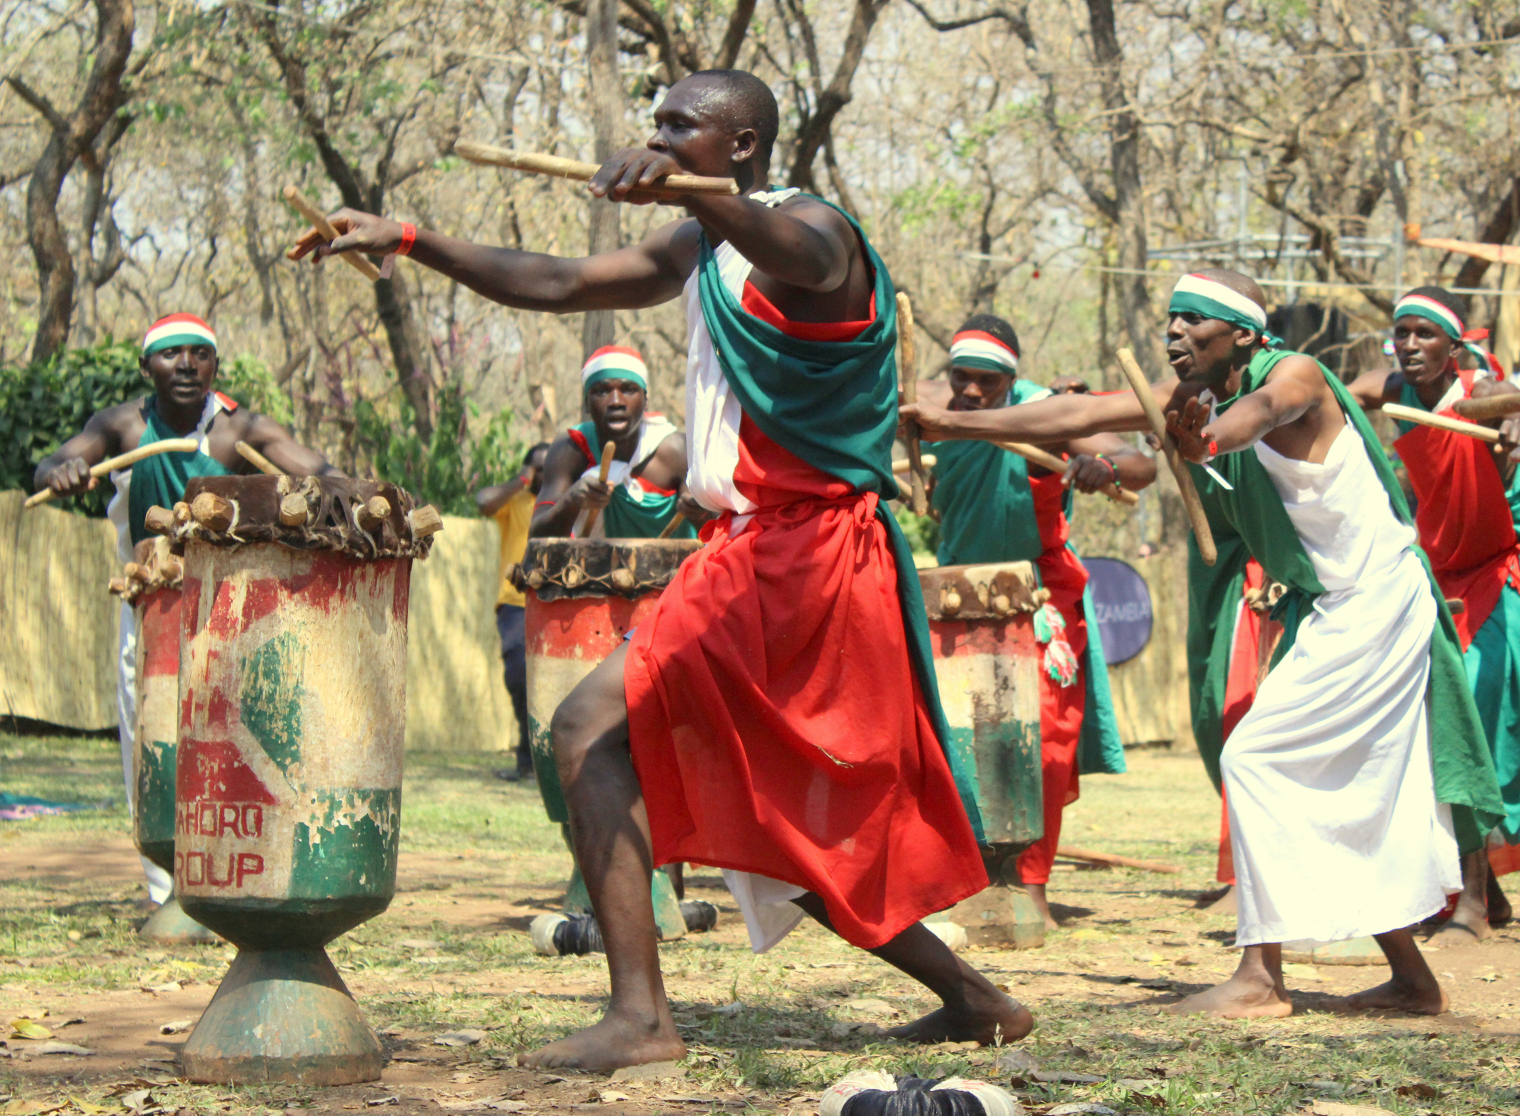 burundi culture A history of rwanda and burundi, two african nations run by western imperial powers until independence in 1961 burundi became an independent state in 1962.